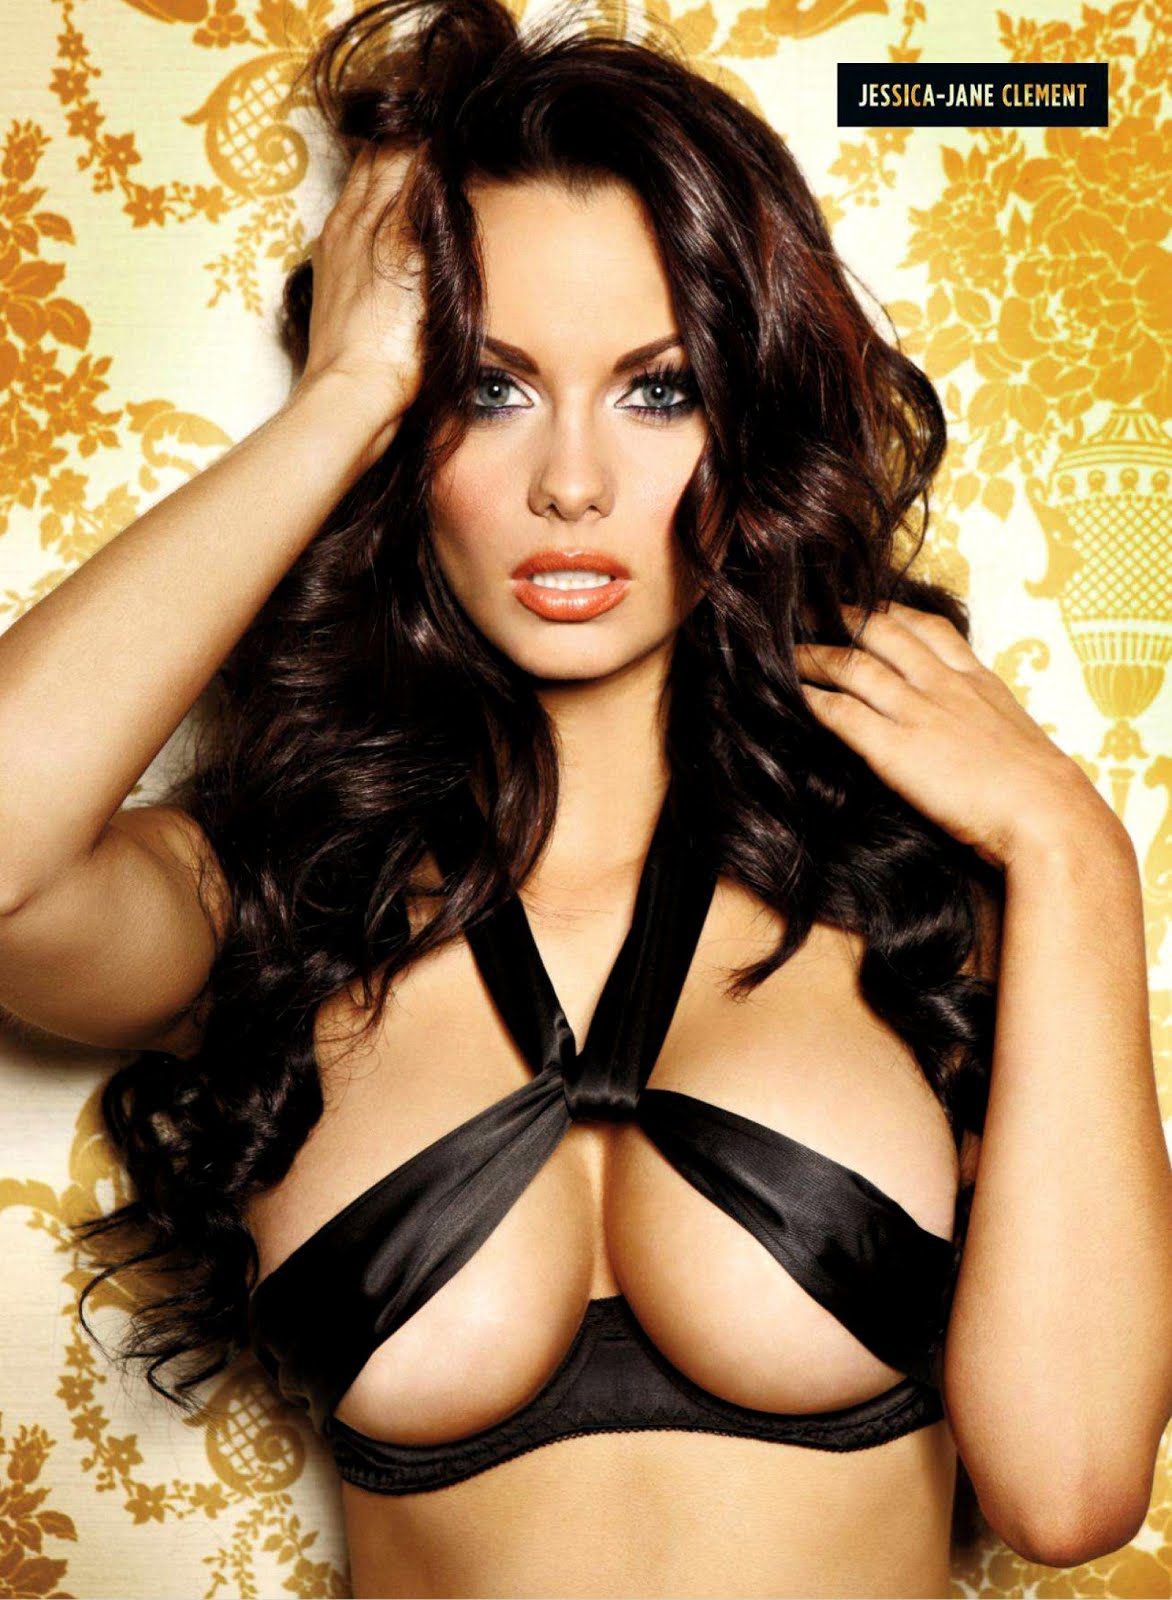 Jessica jane clement pic compilation 9